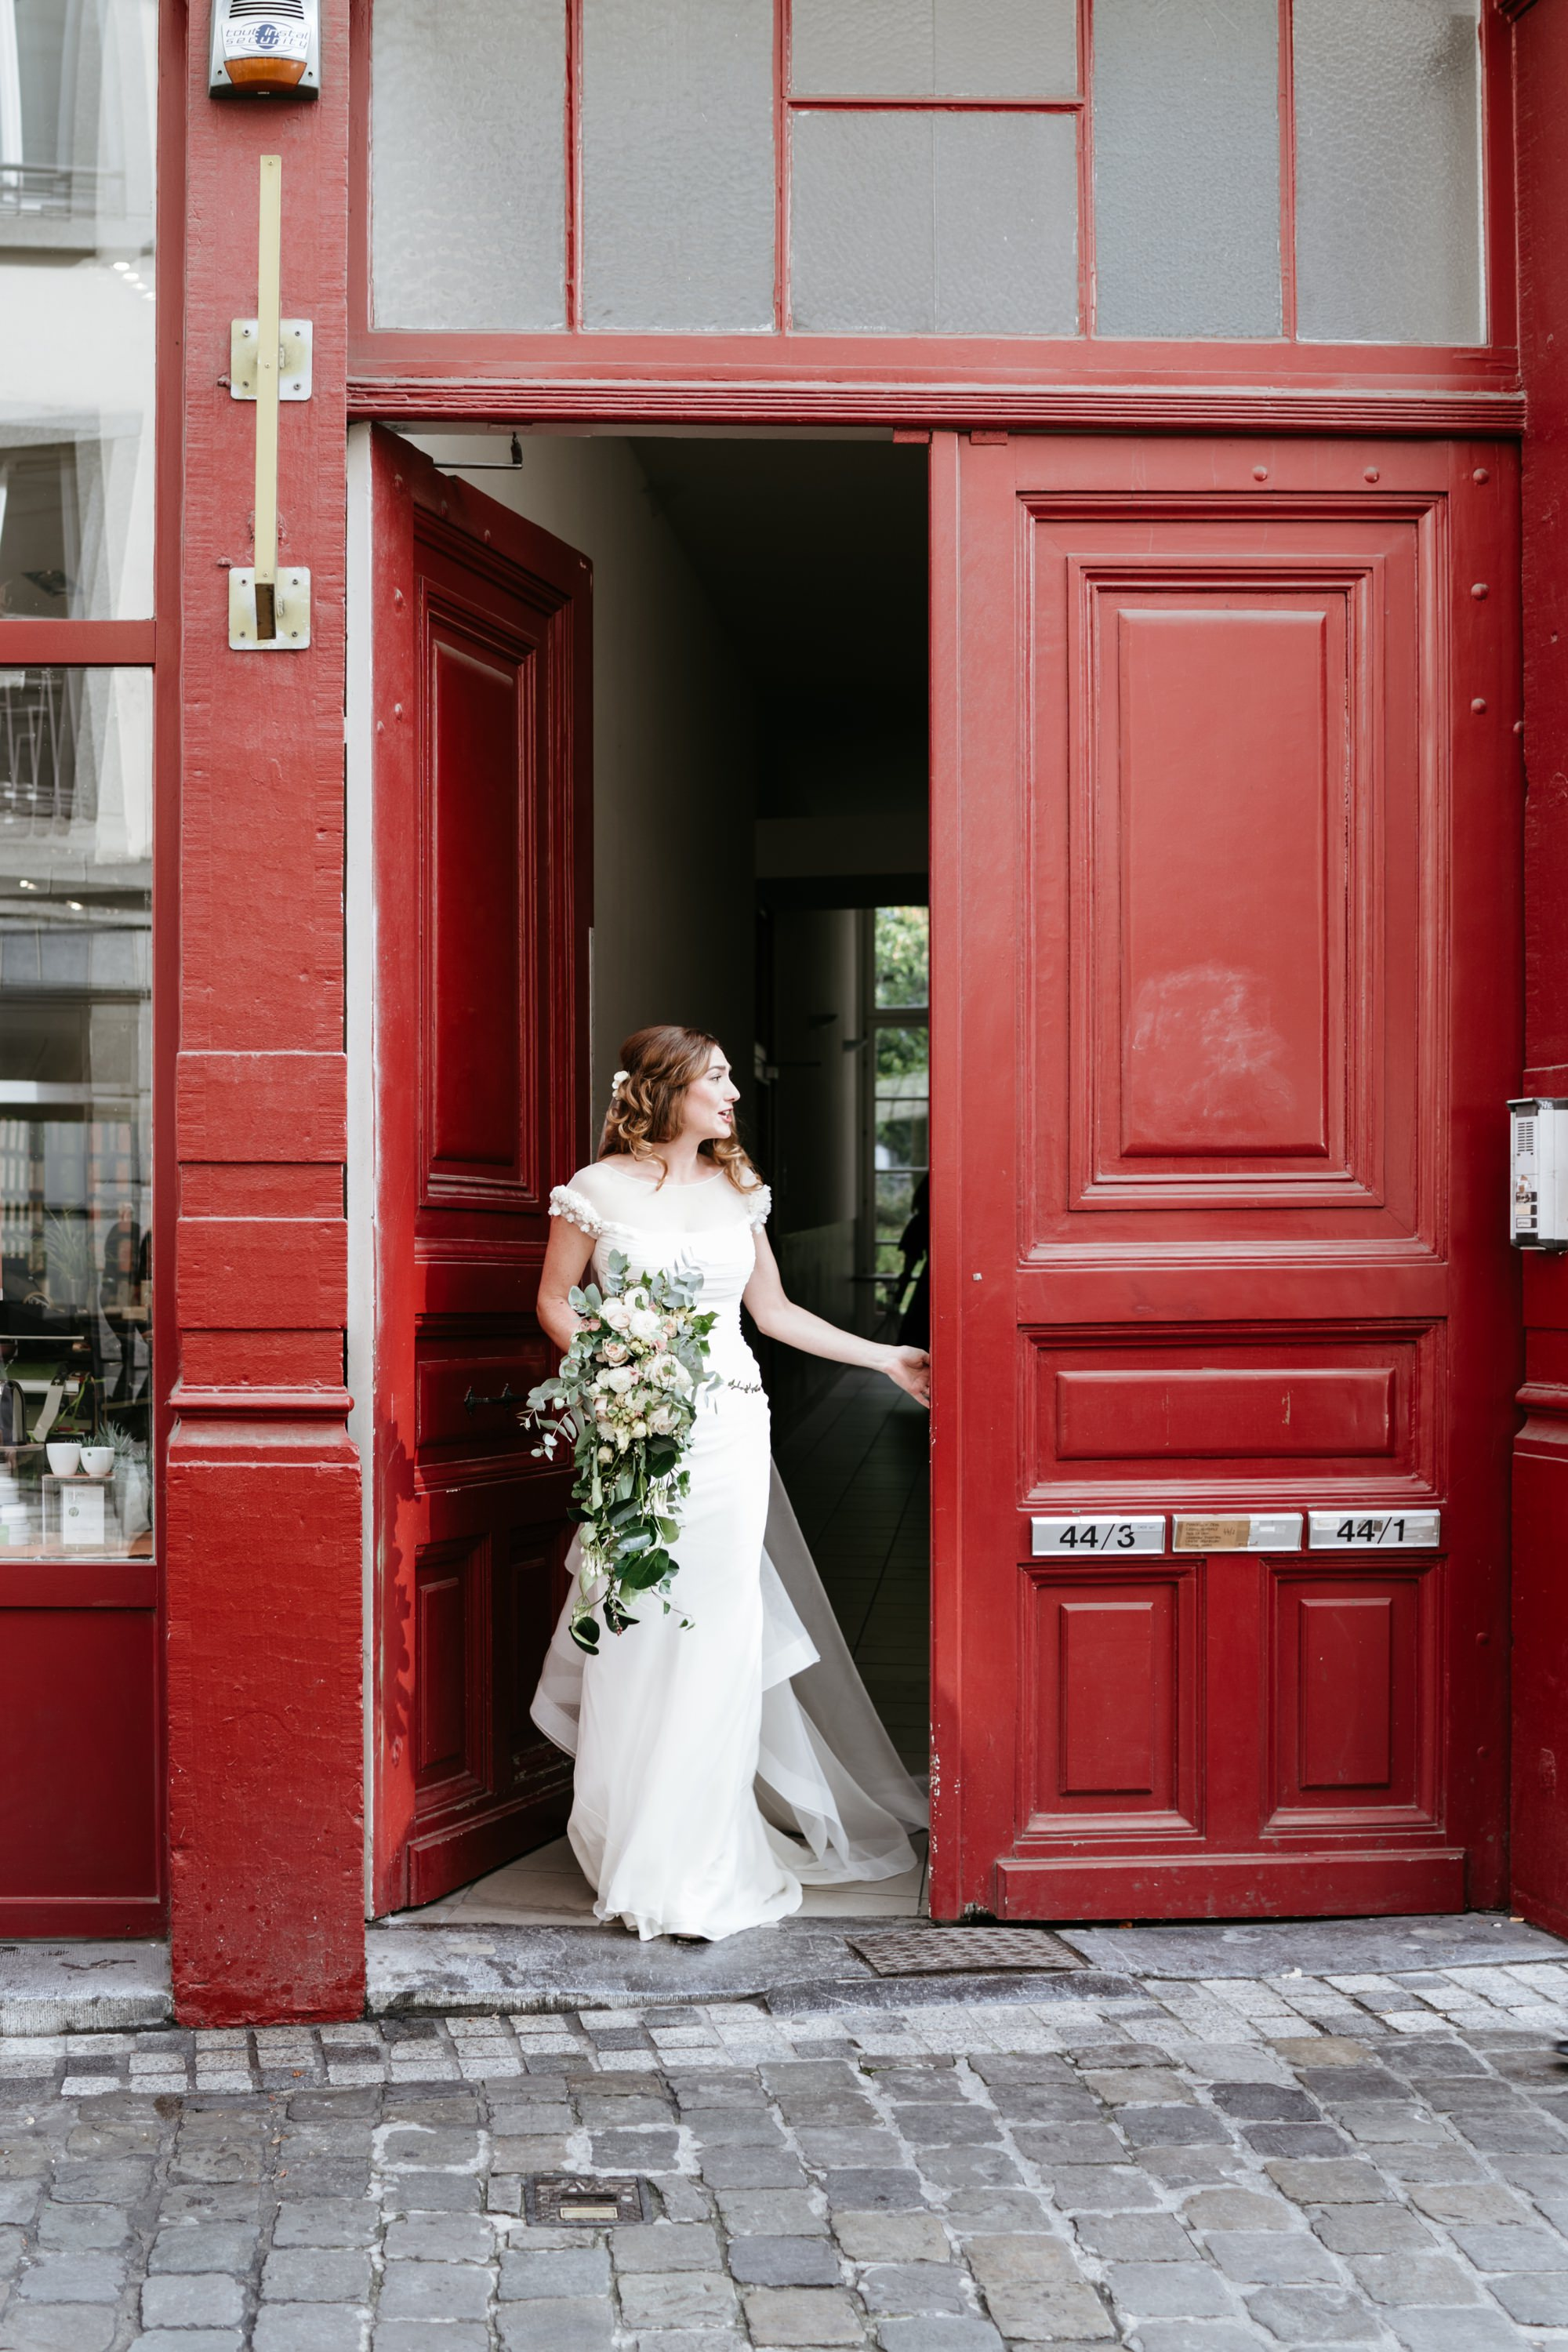 natural wedding photography bruselas 0023 1